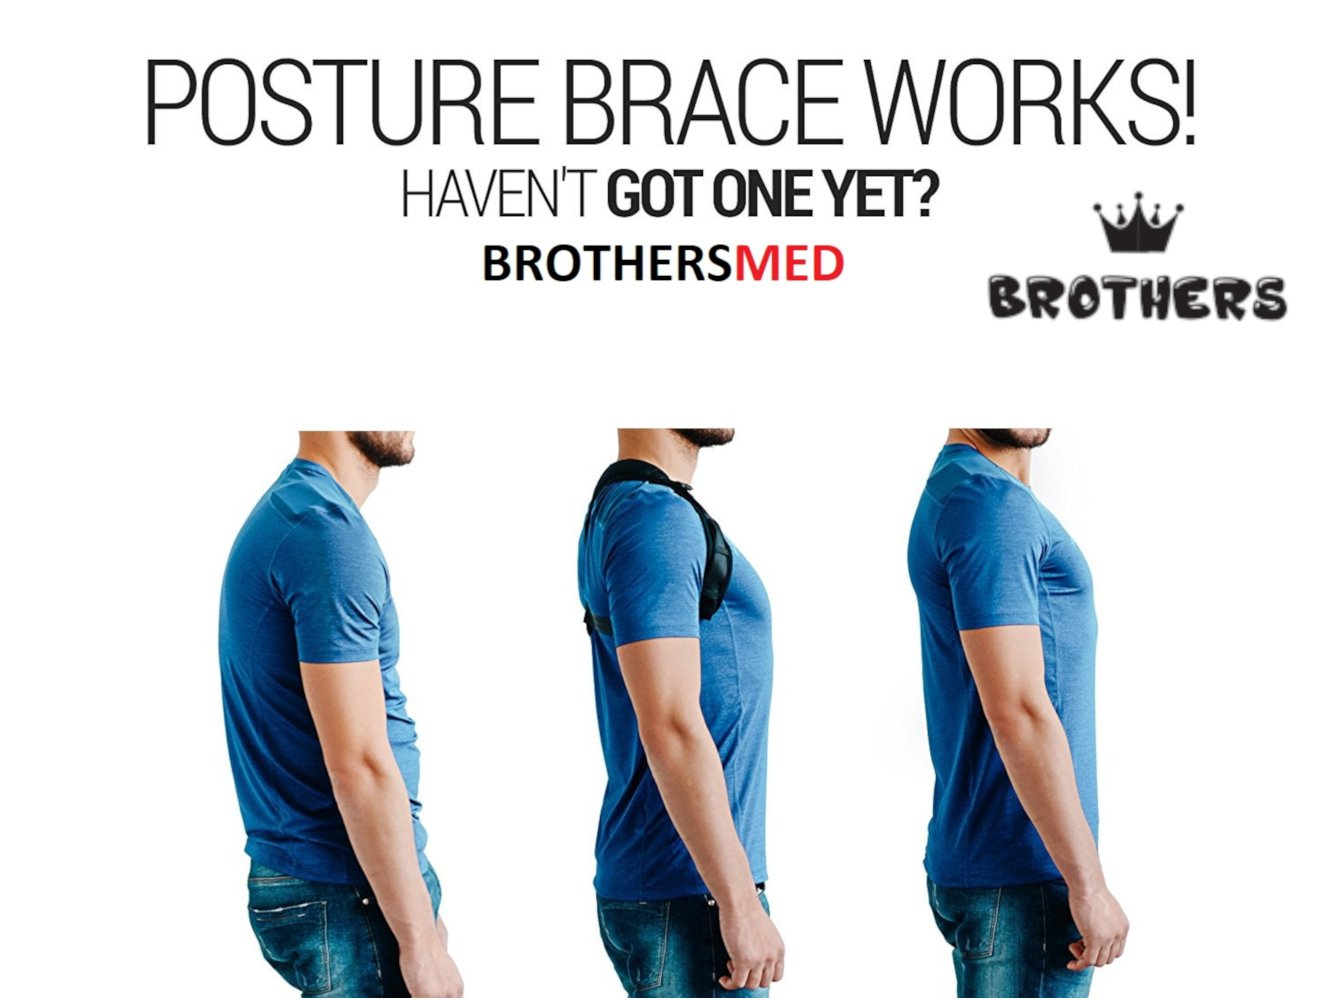 Posture Corrector for Women & Men, Orthopedic Back Support,Fully Adjustable, Breathable and Comfortable Support Brace,Upper Back & Neck Pain Relief by Brothers (Image #7)